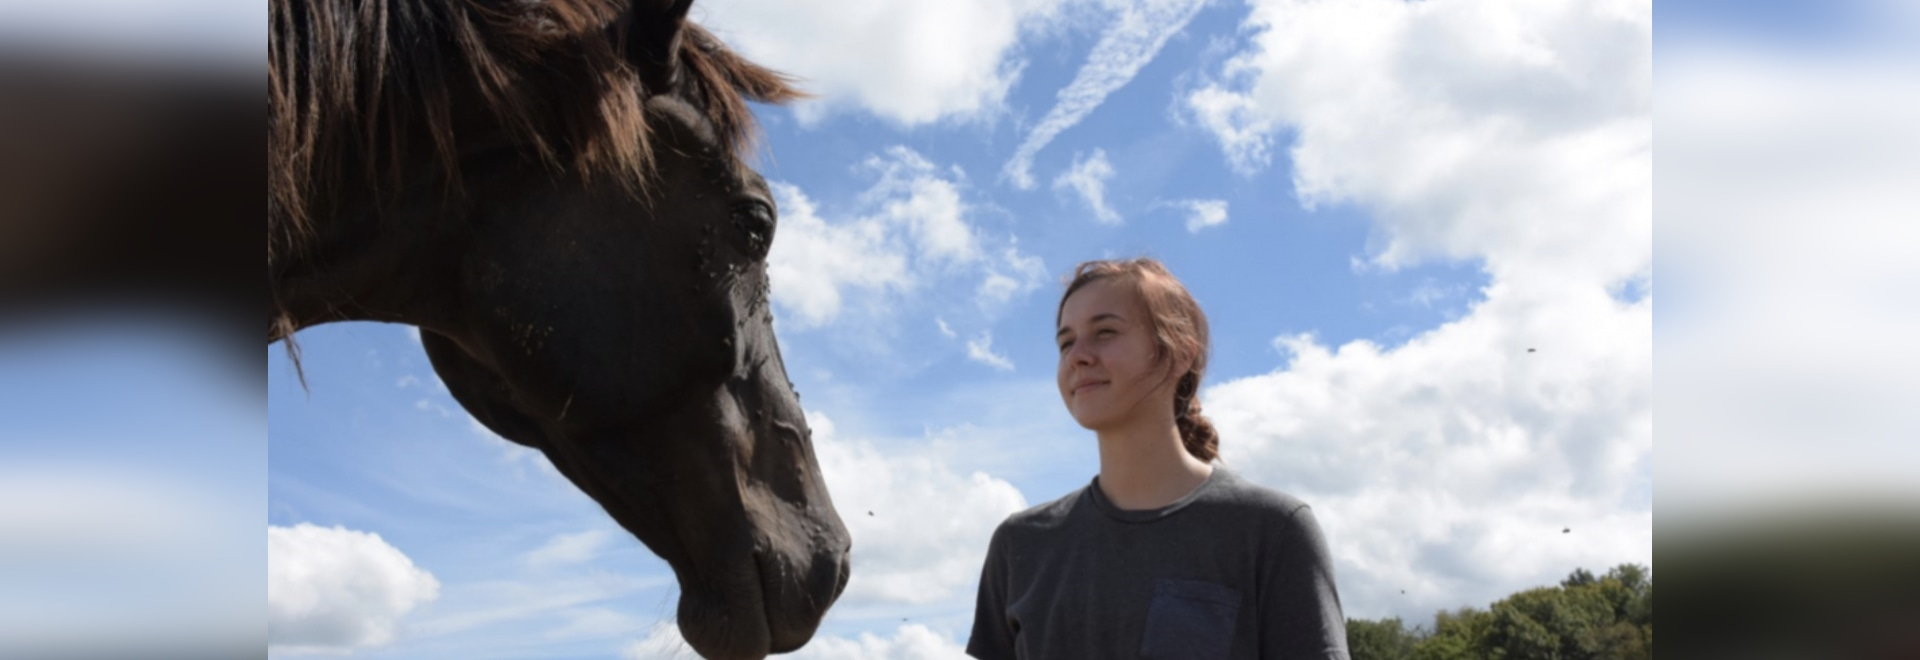 Paulina Oleinik, a senior in Penn State's College of Agricultural Sciences, is one of the live-in employees at the Penn State Horse Barn. Photo credit: Penn State.